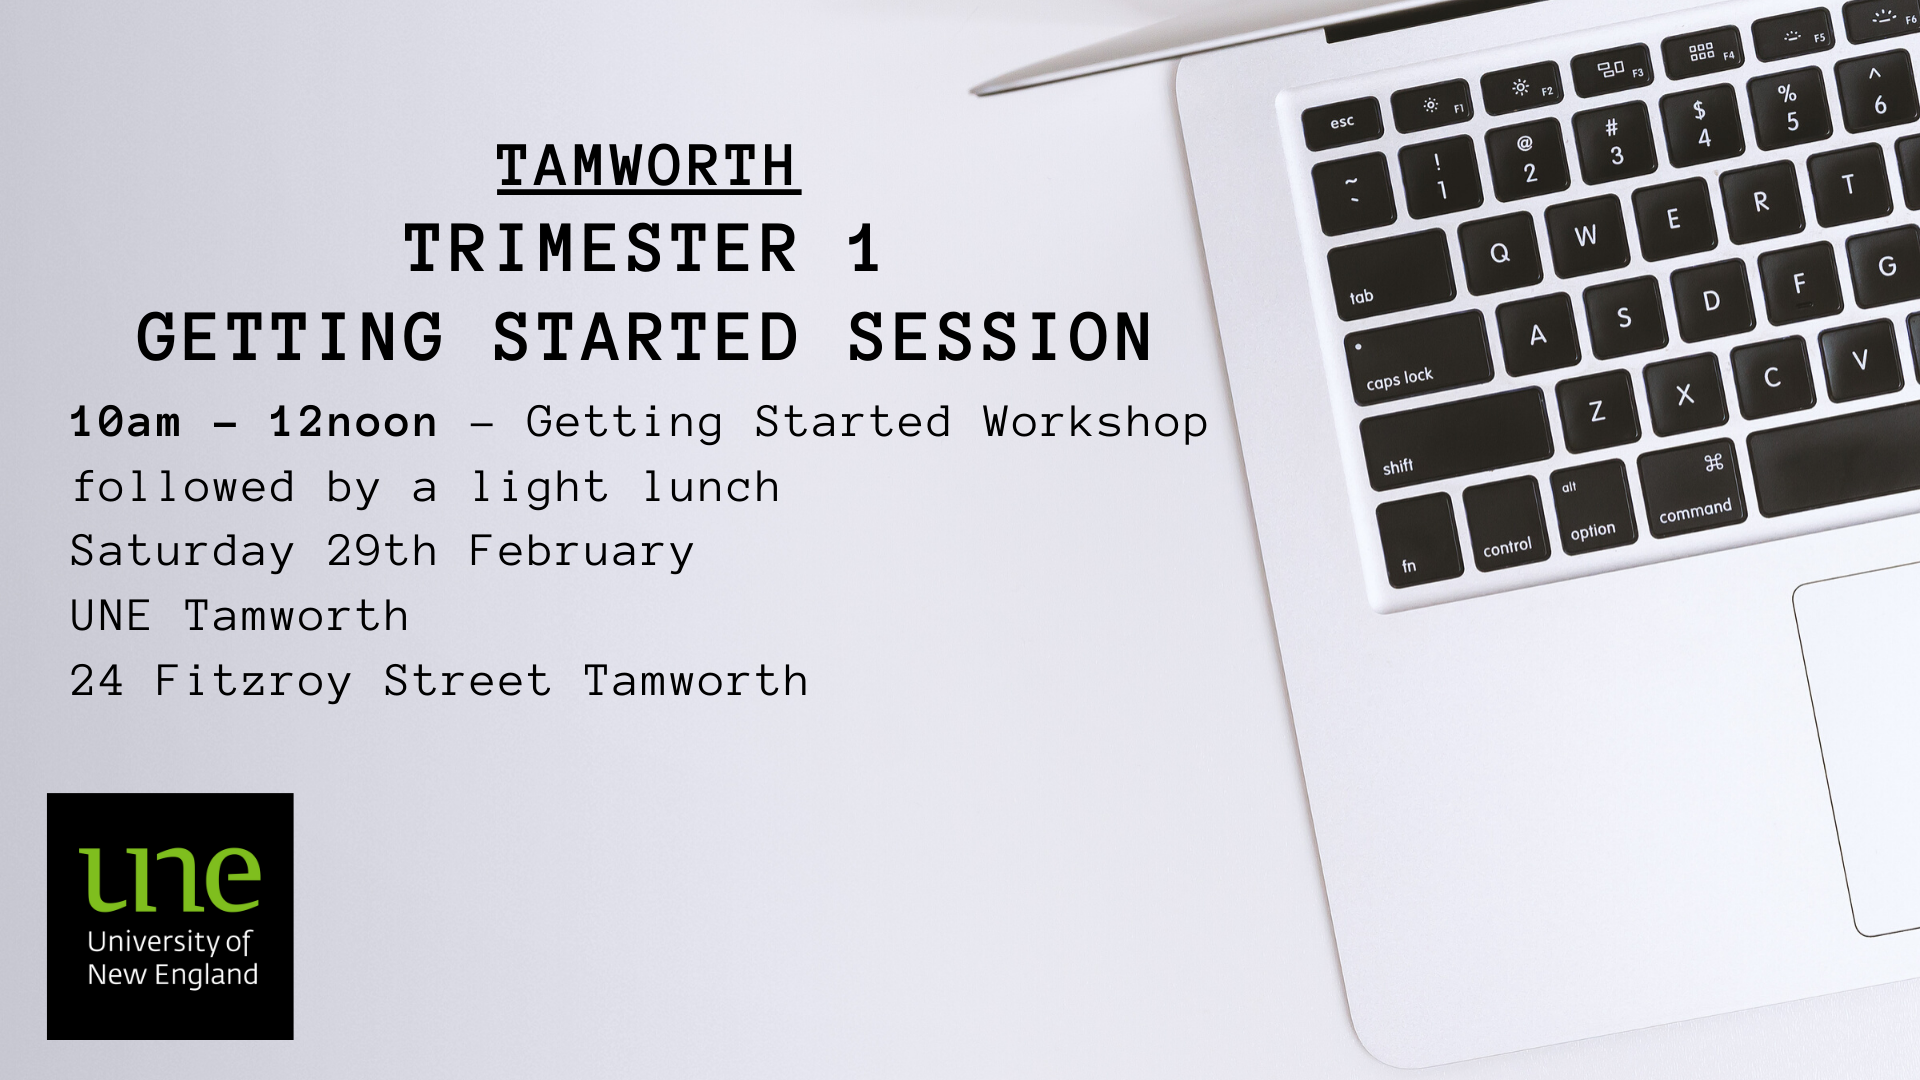 UNE Trimester 1 2020 - Tamworth Getting Started Session